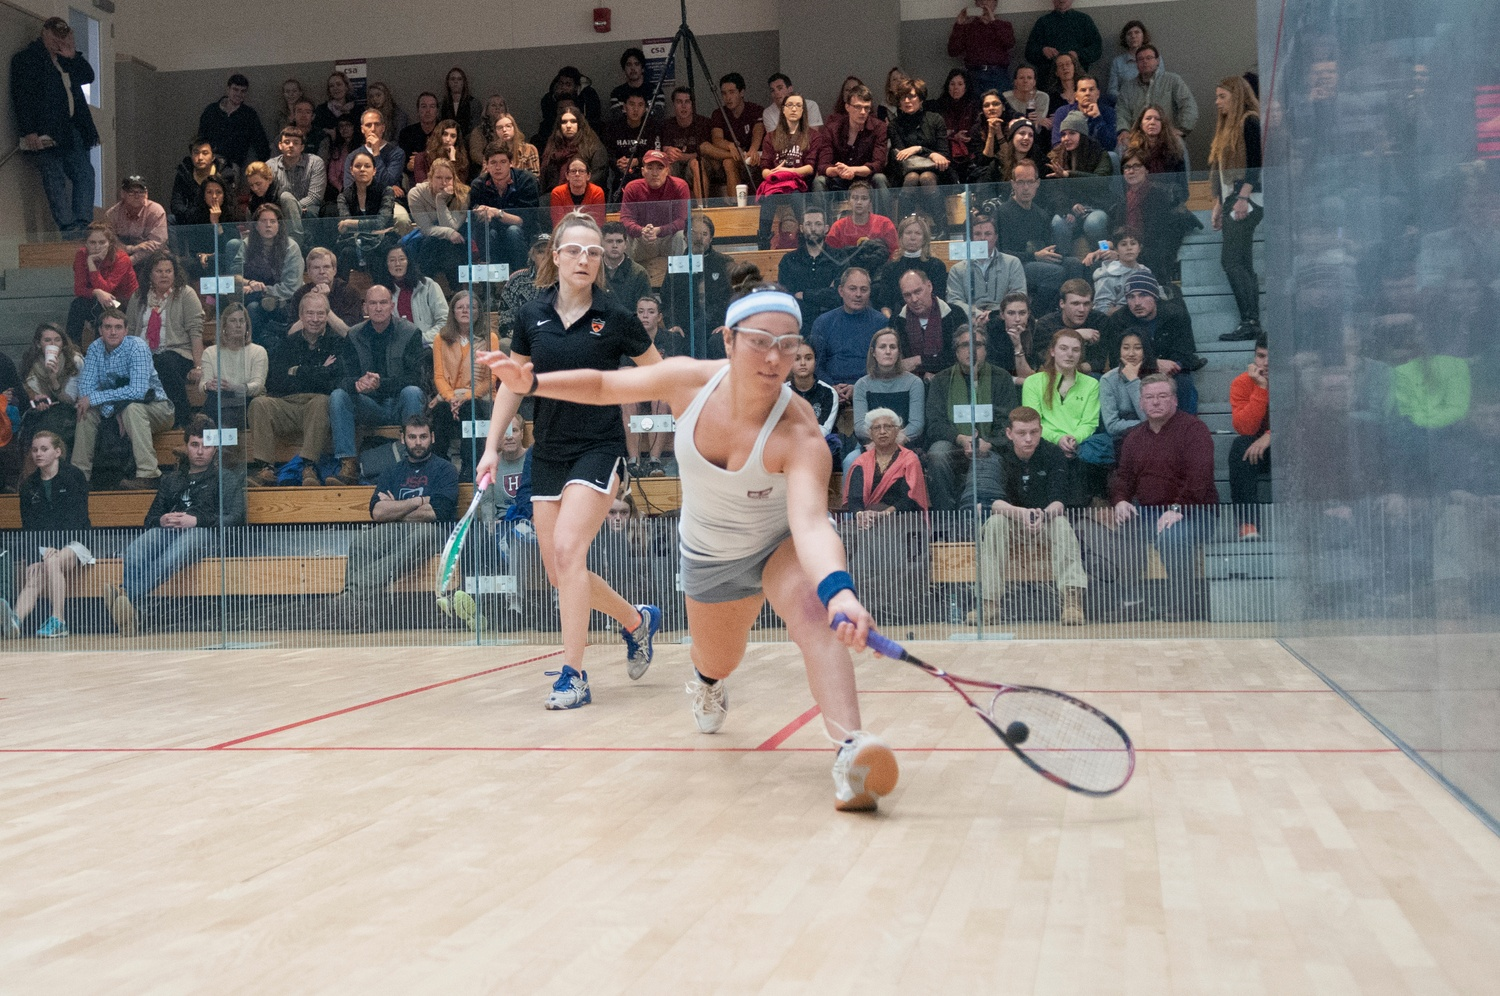 Senior Amanda Sobhy concluded her career with her fourth-straight CSA individual national championships, becoming only the second women's squash player to do so.